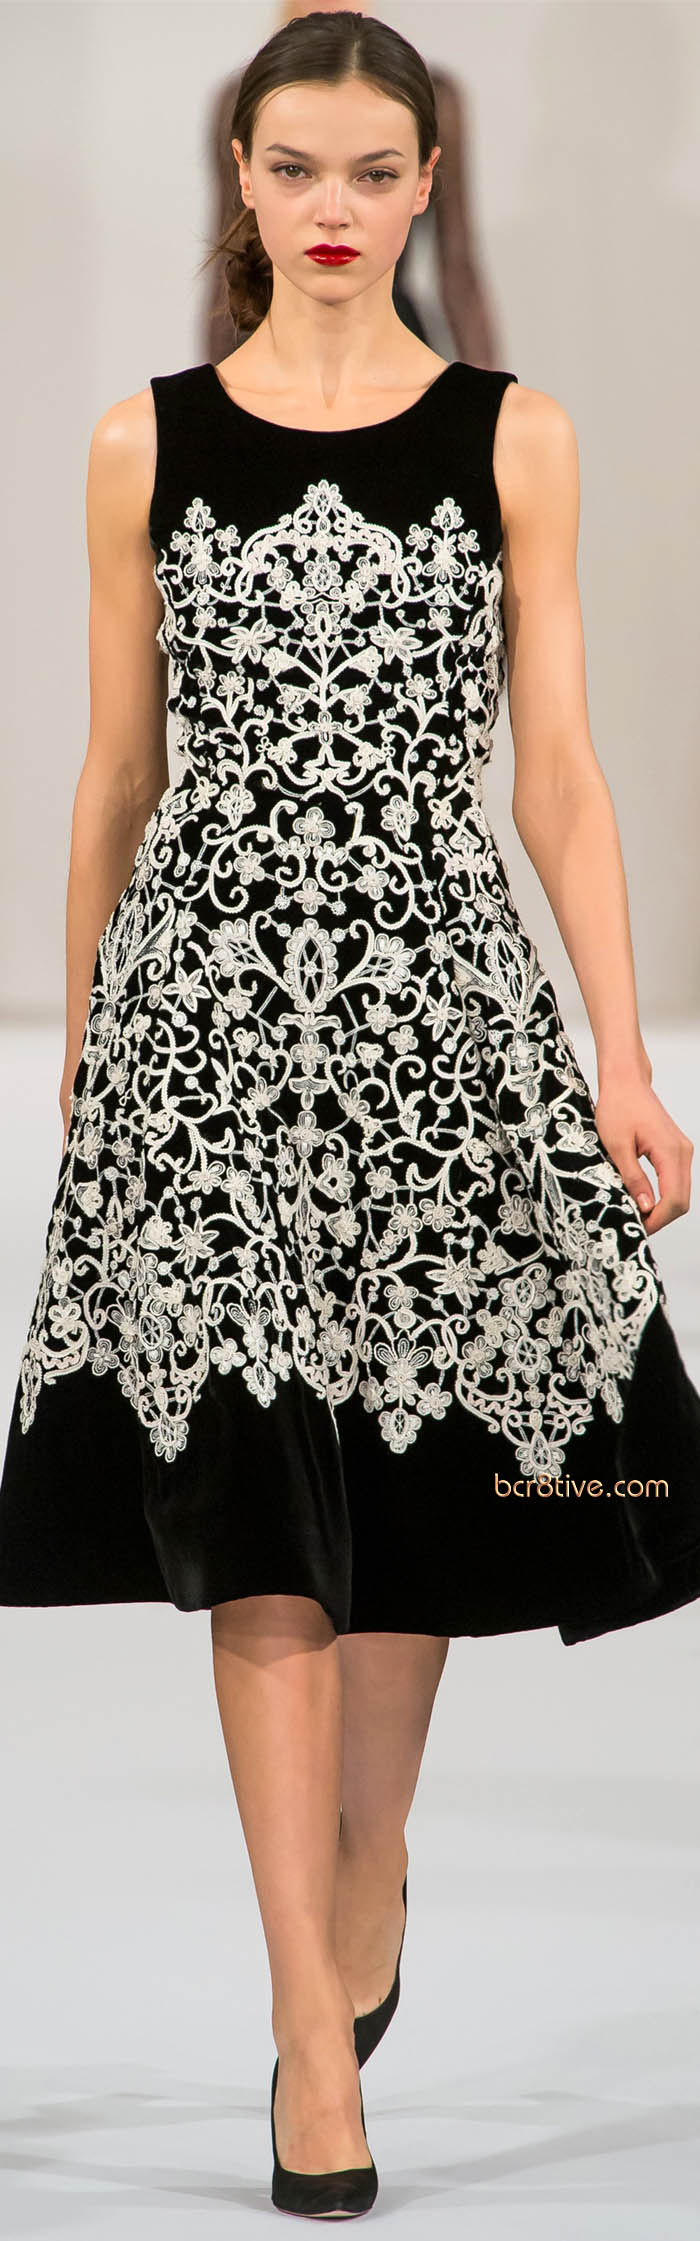 Oscar de la Renta Fall Winter 2013 New York Fashion Week